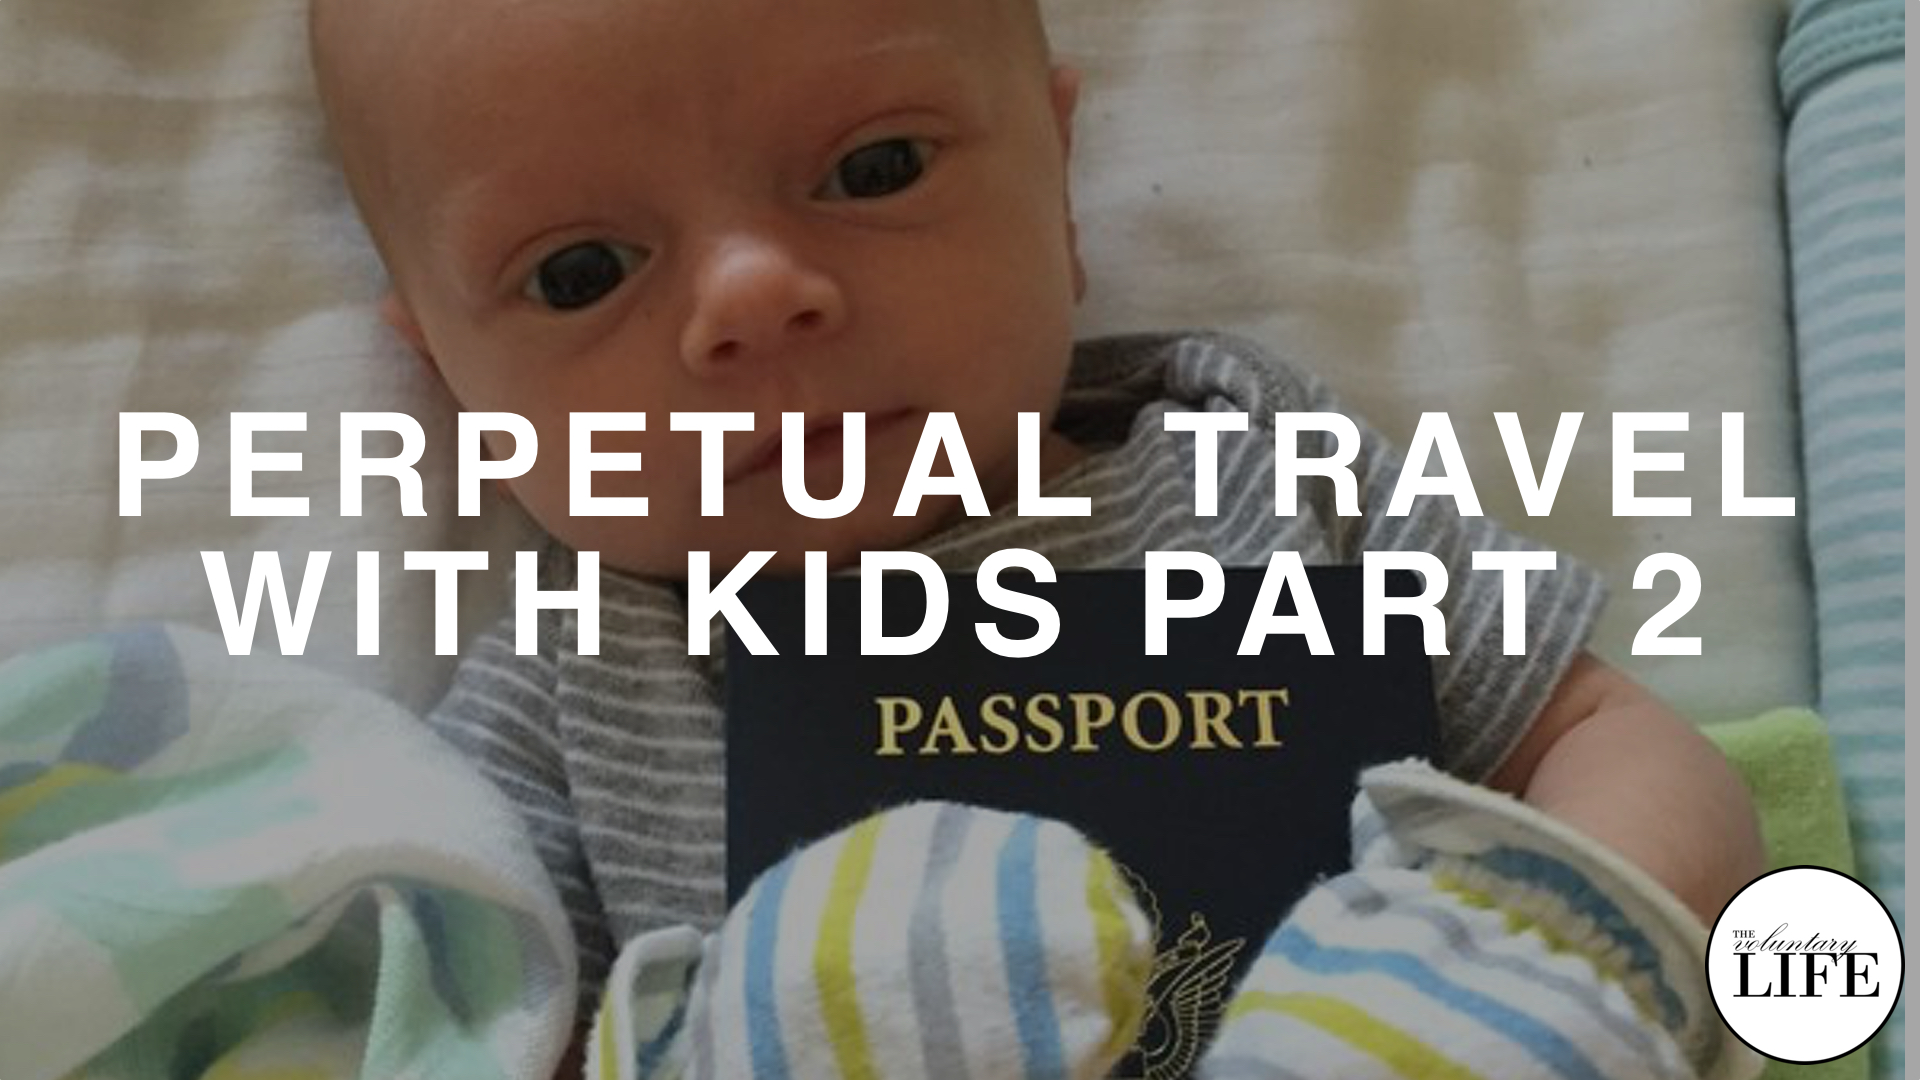 256 Perpetual Travel With Kids Part 2: Interview With Mike And Lauren